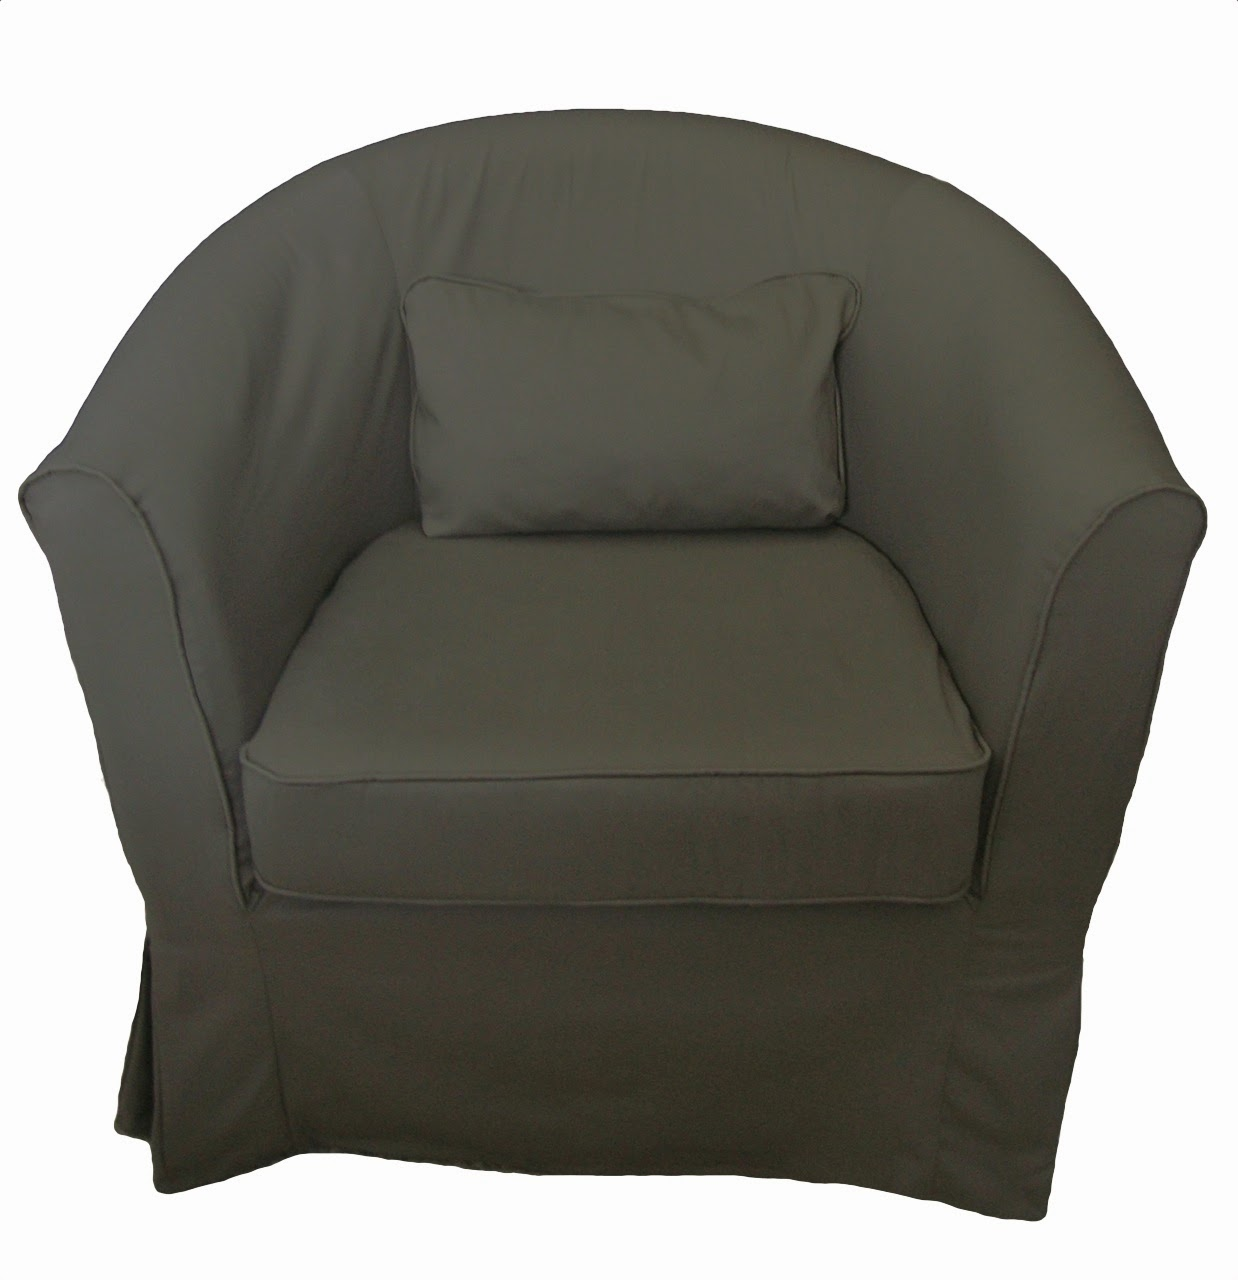 Ikea Schrank Geschirrspüler ~ Slipcovers for the IKEA Ektorp Tullsta chair in Taupe Twill and